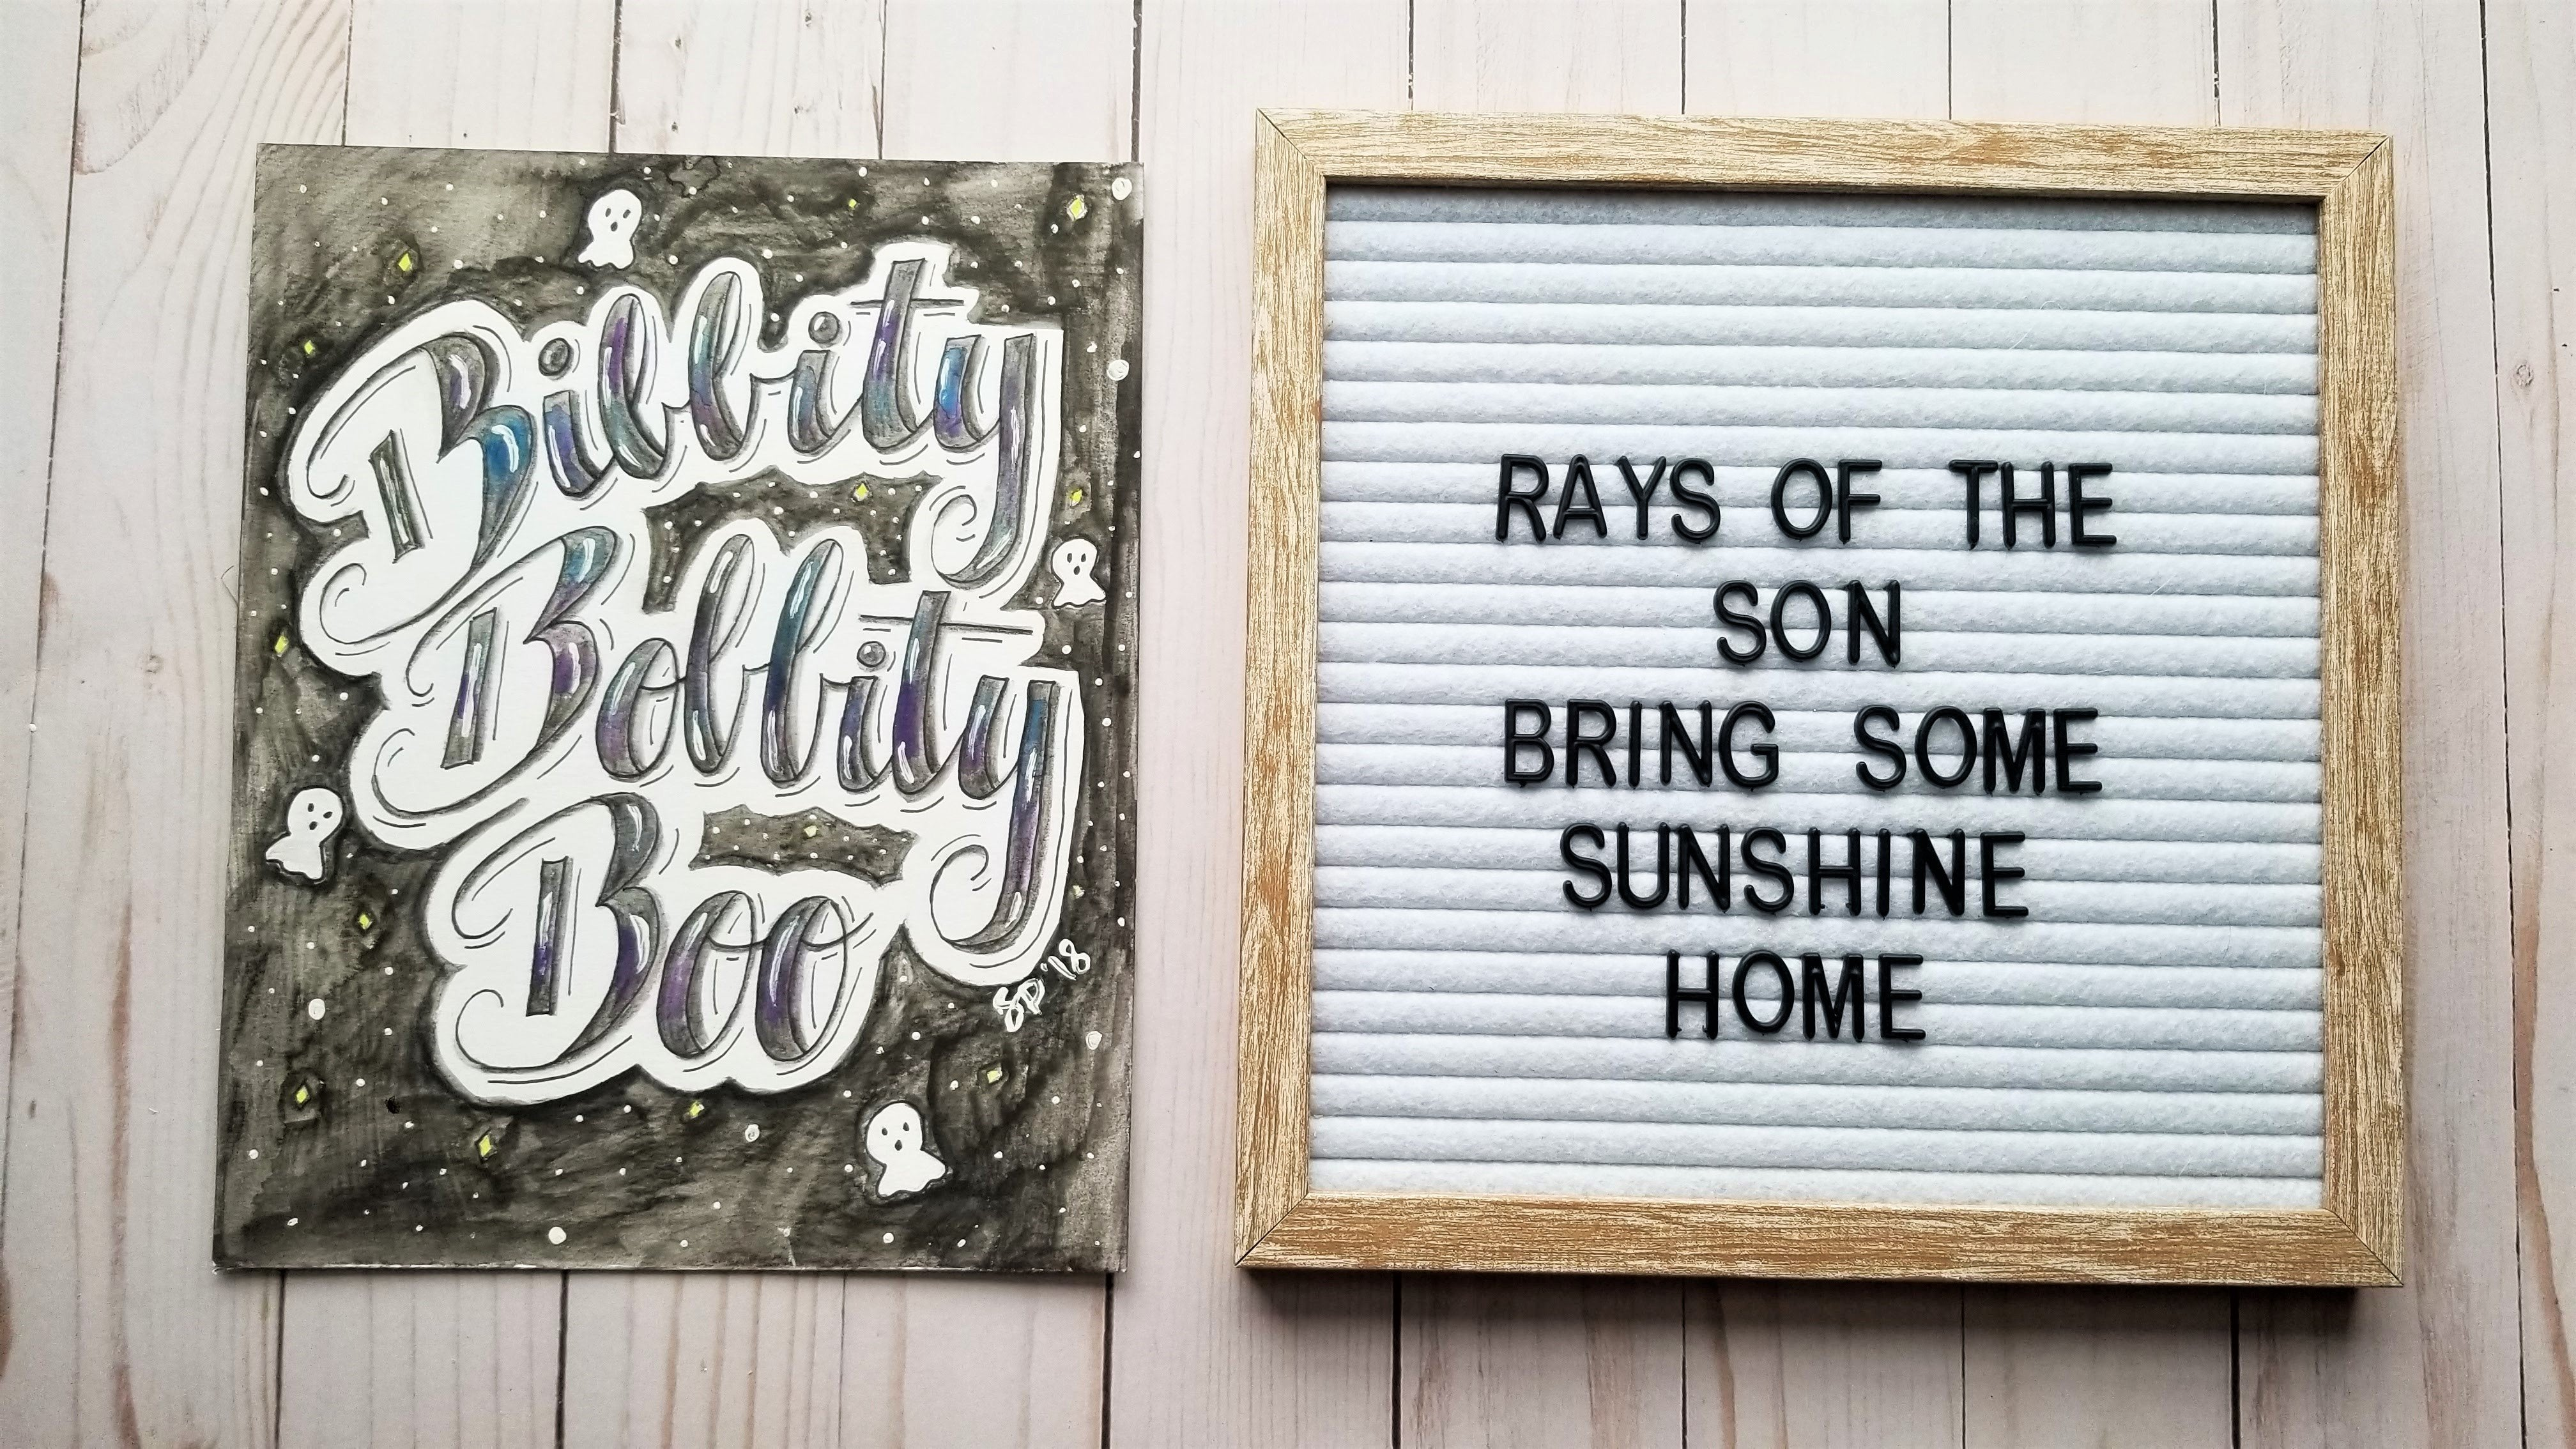 Bibbity Bobbity Boo Typography - Rays of the Son